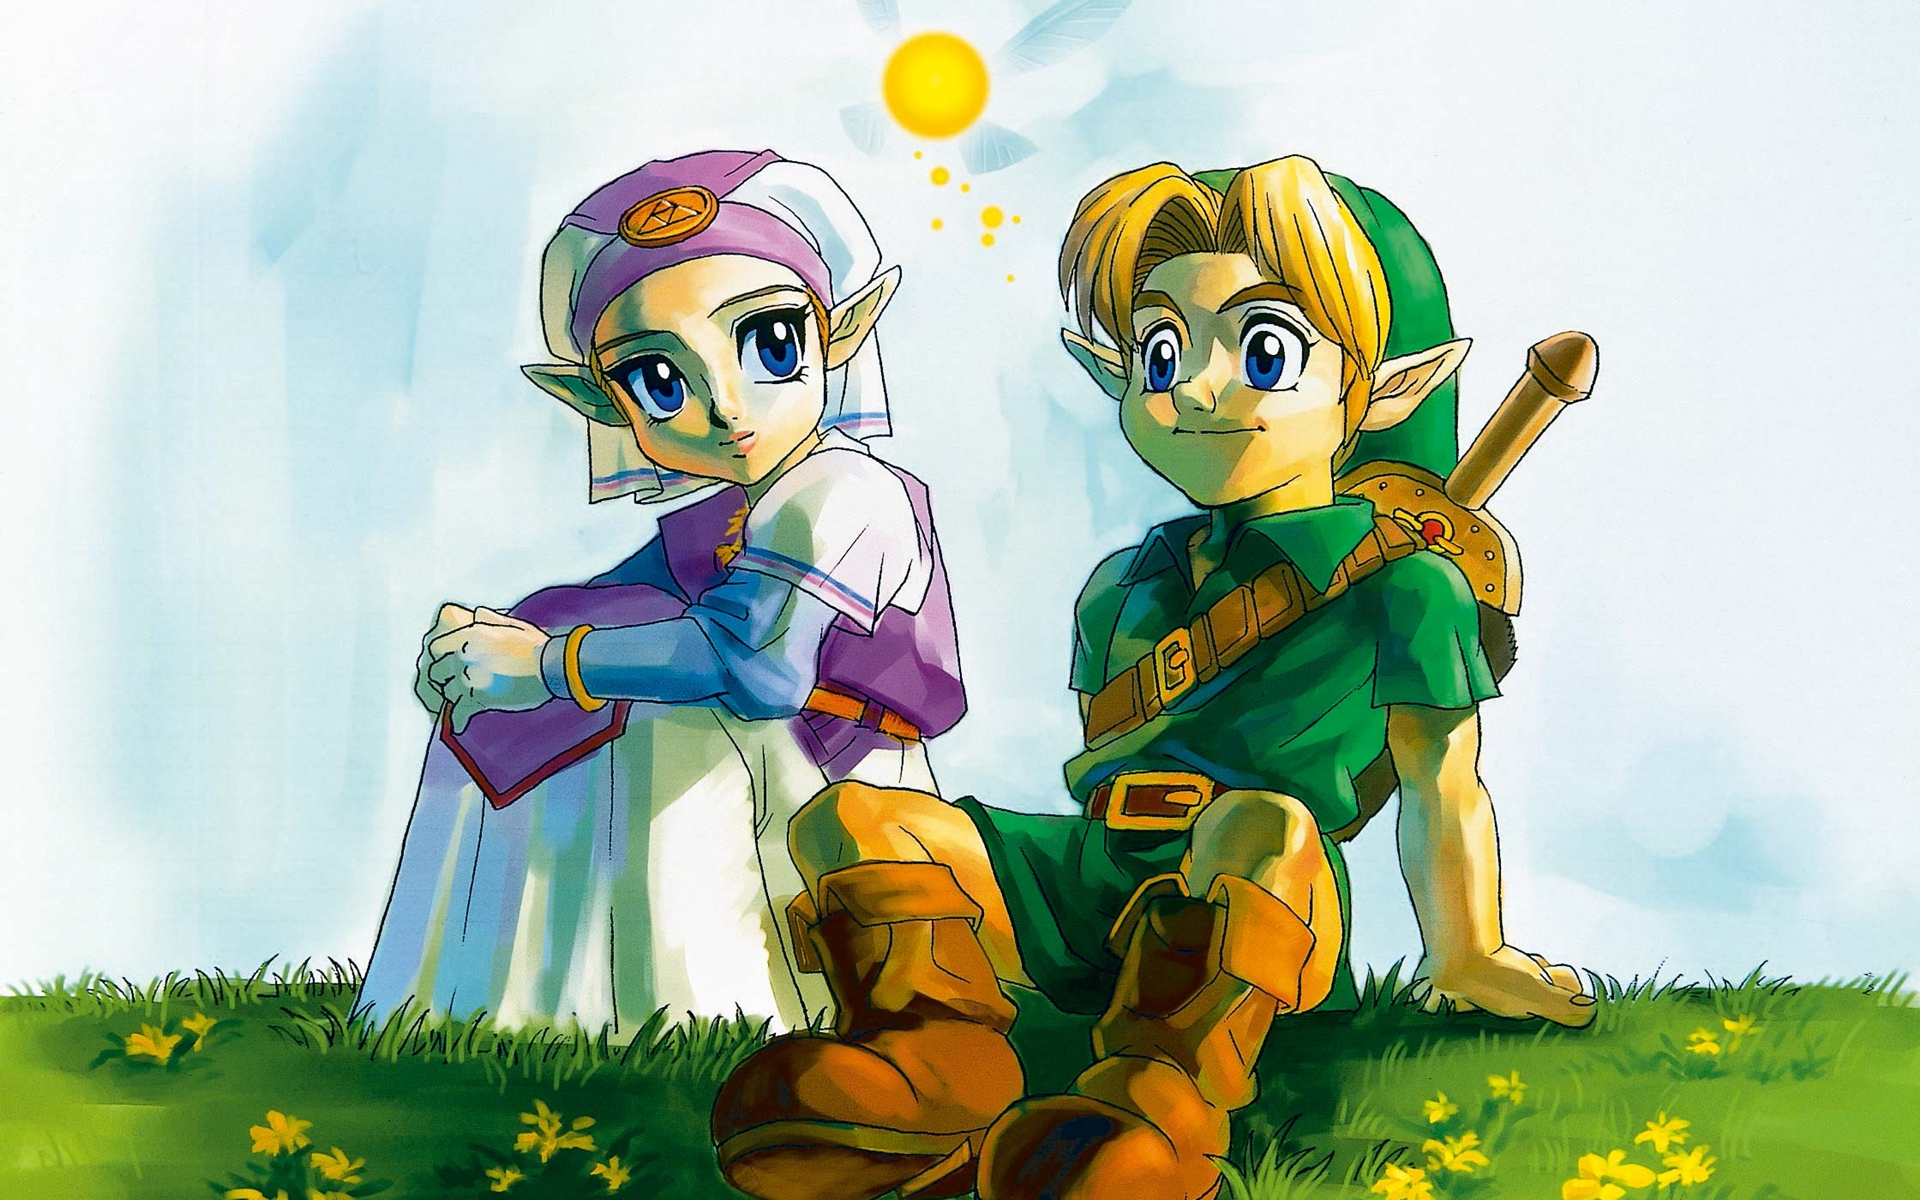 A Princess and her Knight, or more than just that? Looking at Zelda ...